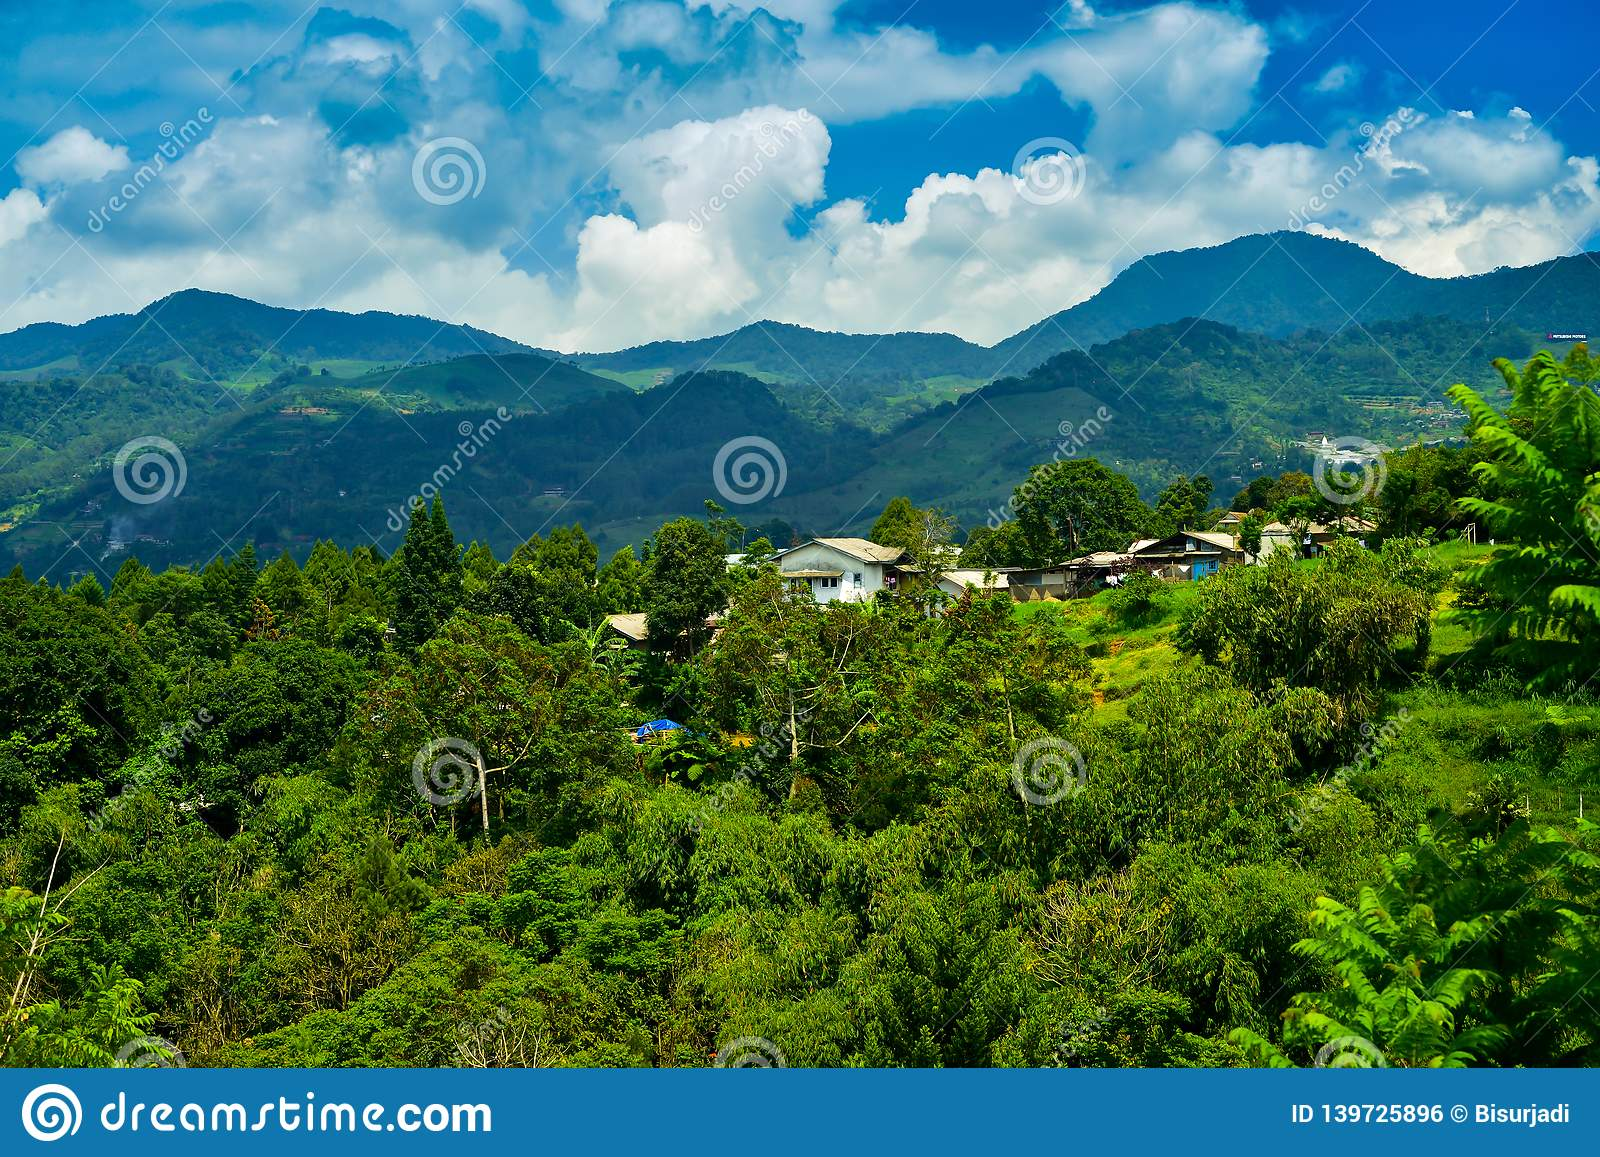 Rain And Moss Forest Mountain India Stock Photo - Image of